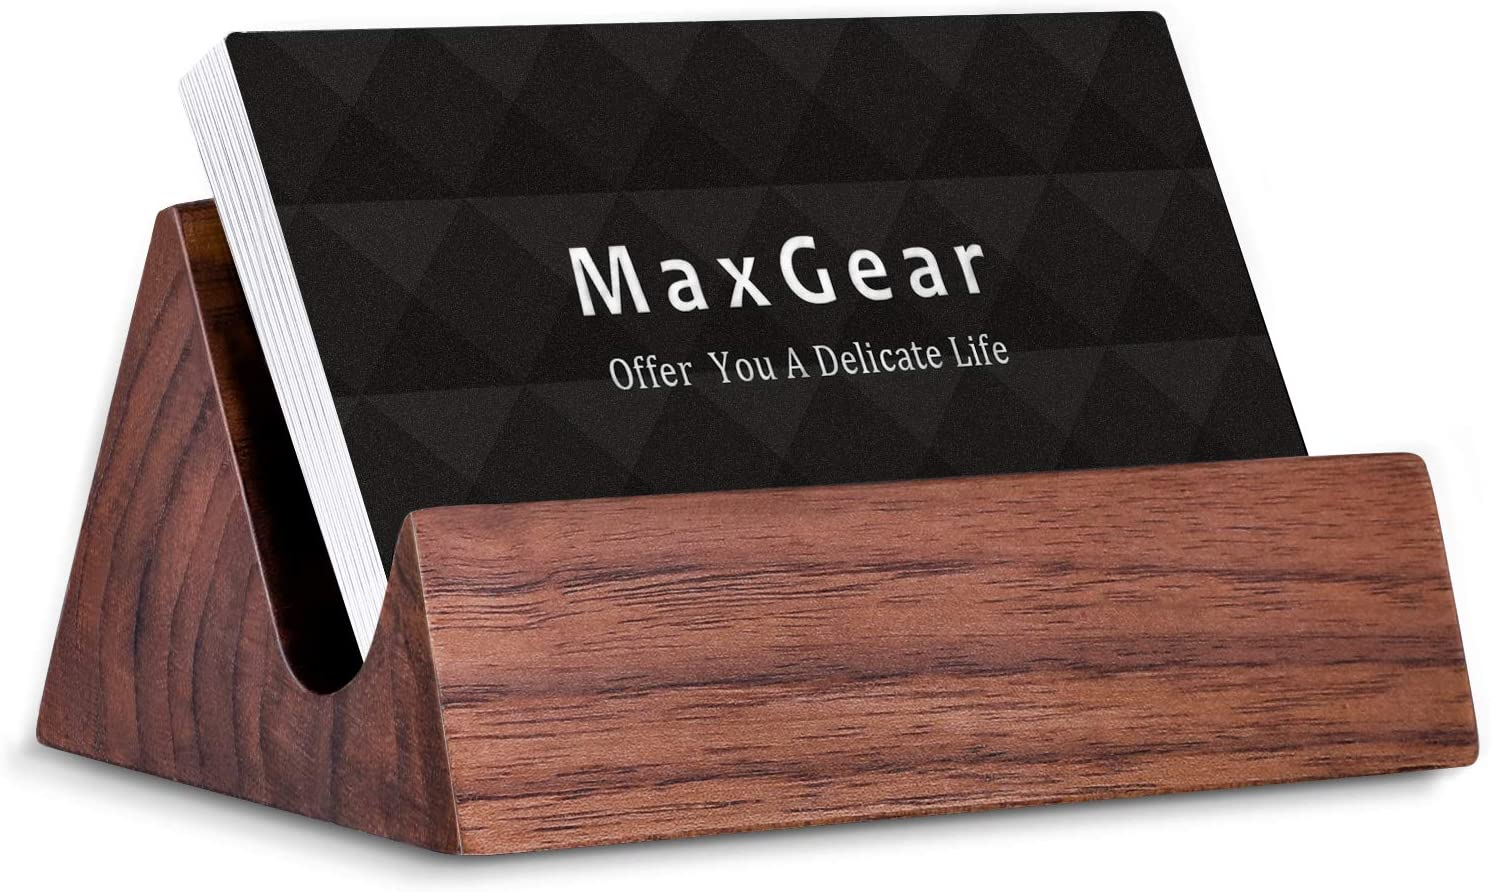 MaxGear Wood Business Card Holder Desk Business Card Holder Stand Wooden  Business Card Display Holders for Desktop Business Cards Stand for Office  and ...